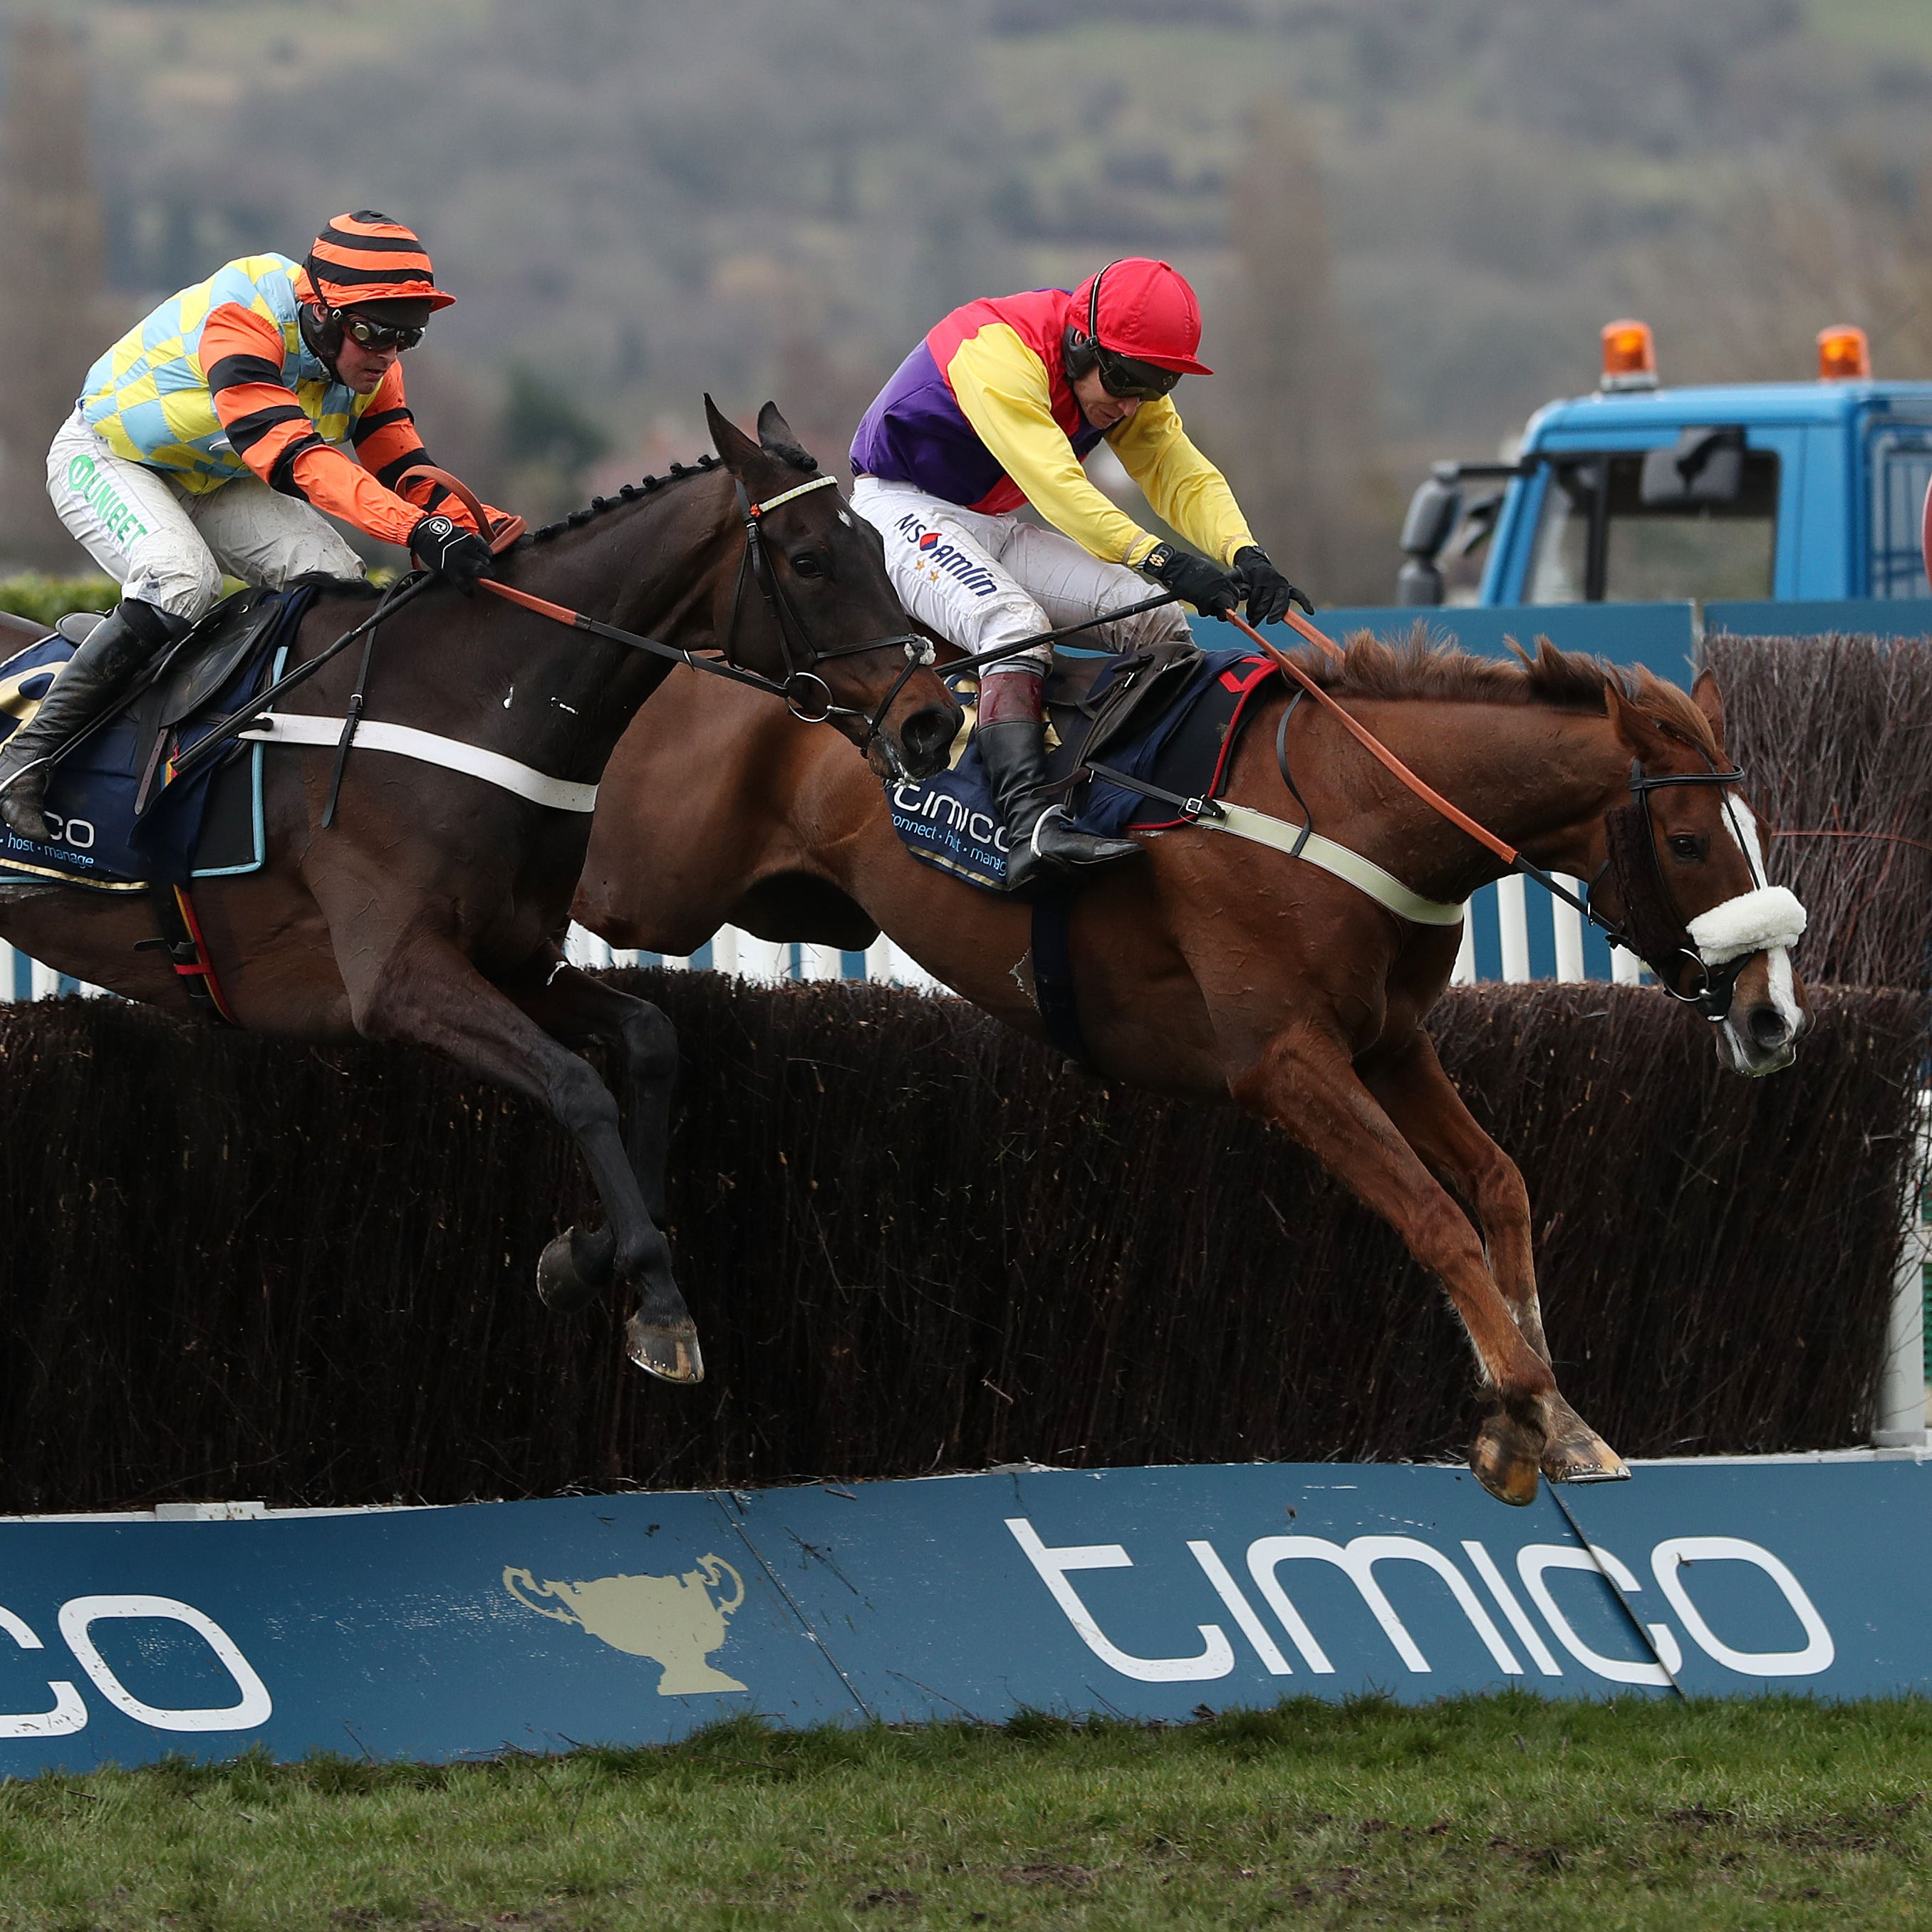 Native River (right) on his way to winning last year's Gold Cup